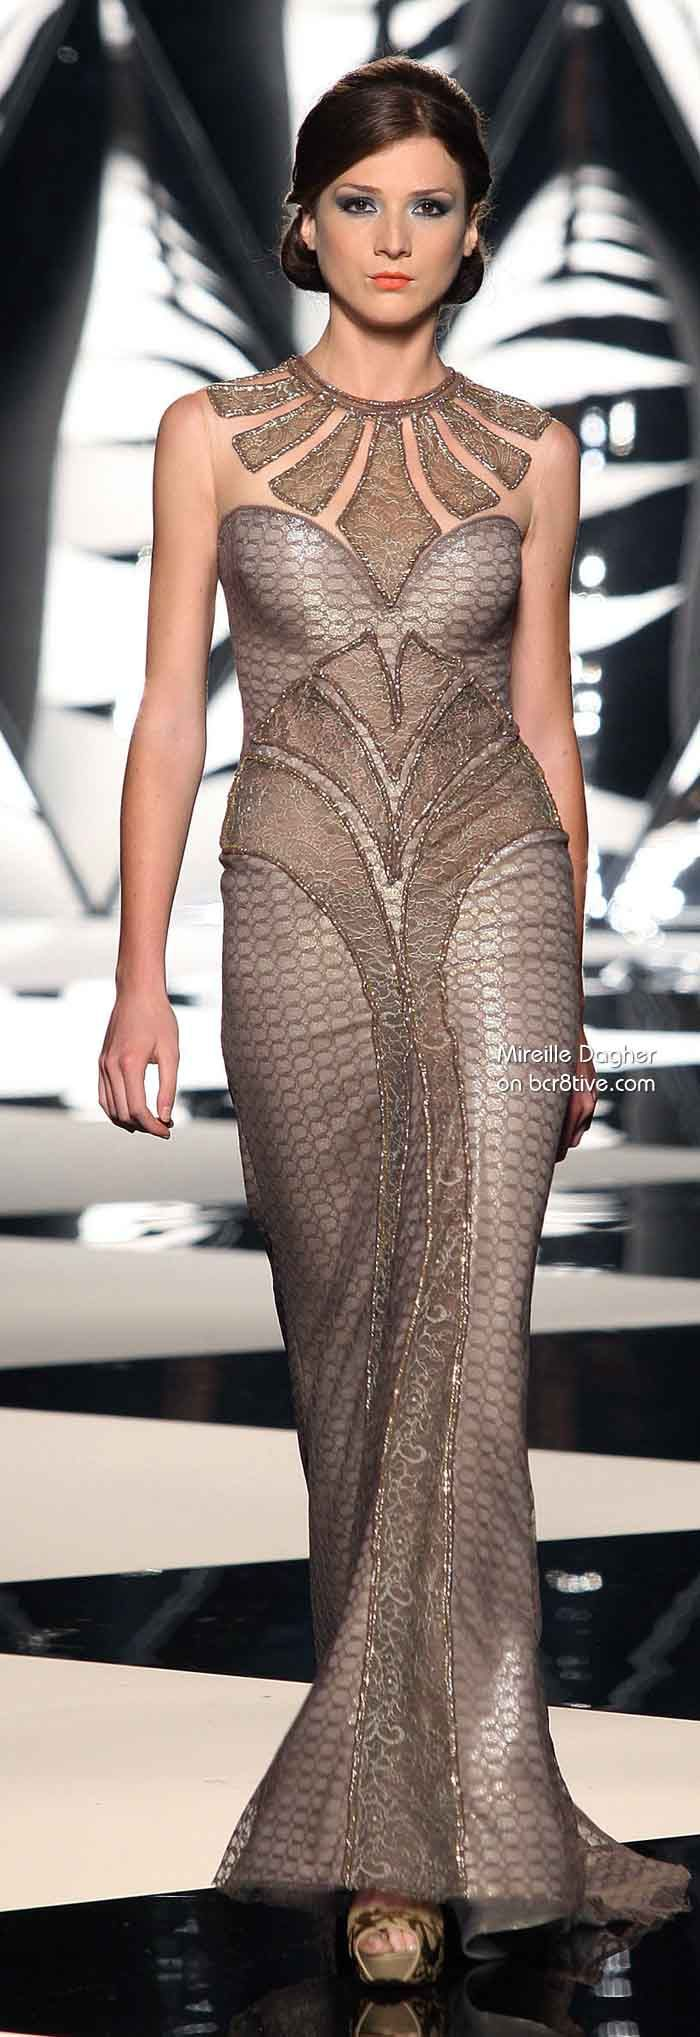 Mireille Dagher Fall Winter 2013-14 Haute Couture » bcr8tive